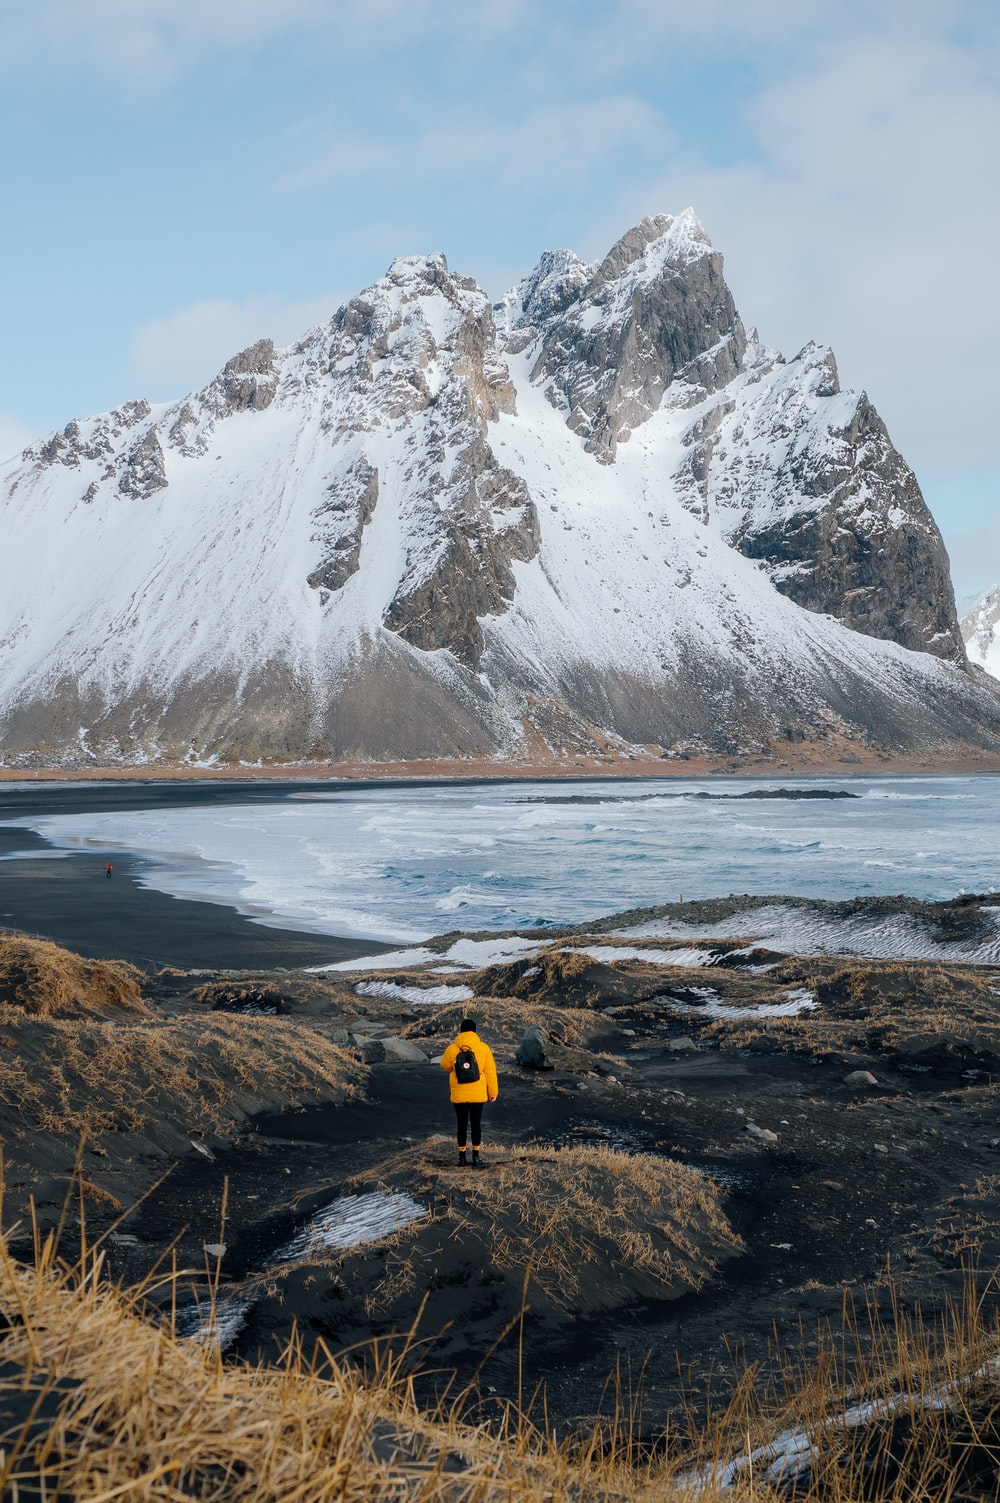 person in yellow jacket standing on brown rock near snow covered mountain during daytime